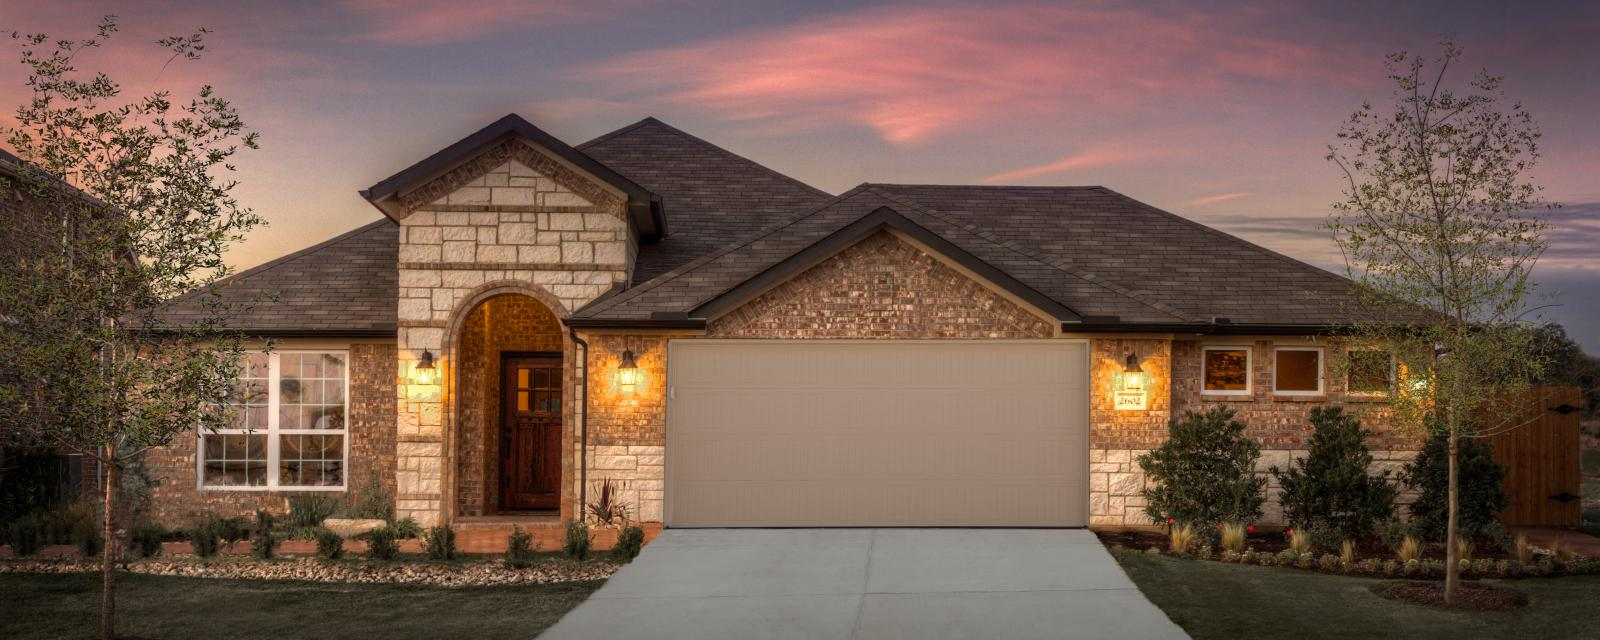 Bunny Trail Estates New Homes Killeen Fort Hood Tx Home